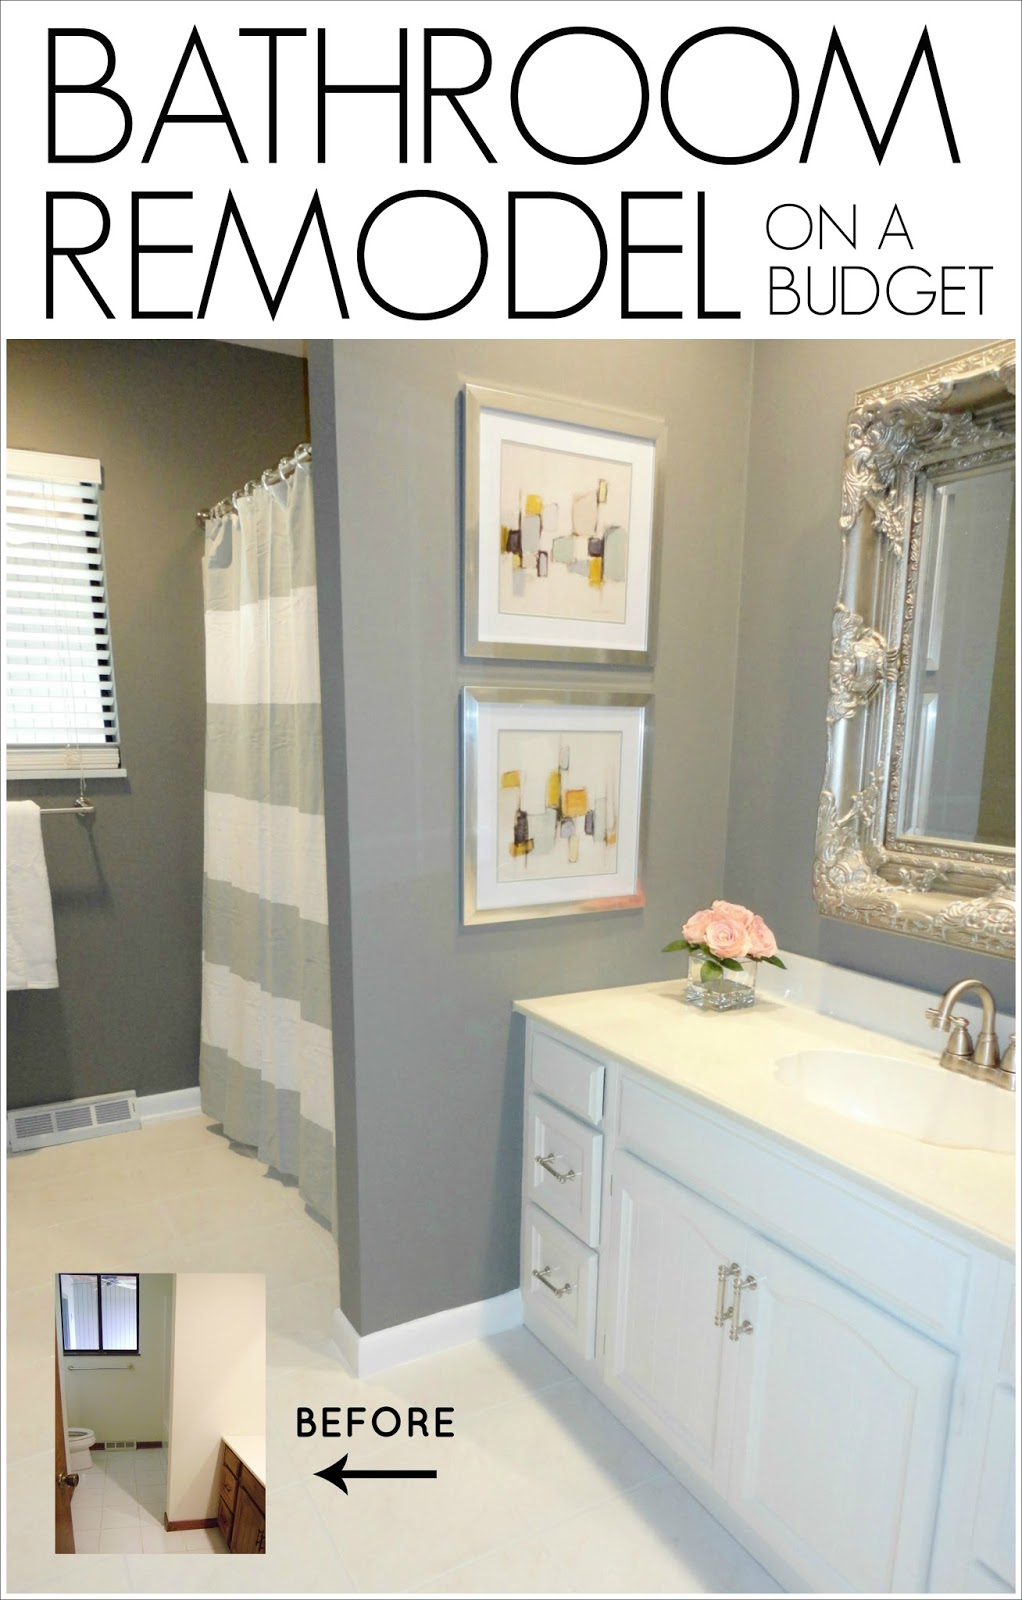 Livelovediy diy bathroom remodel on a budget for Remodeling a bathroom on a budget